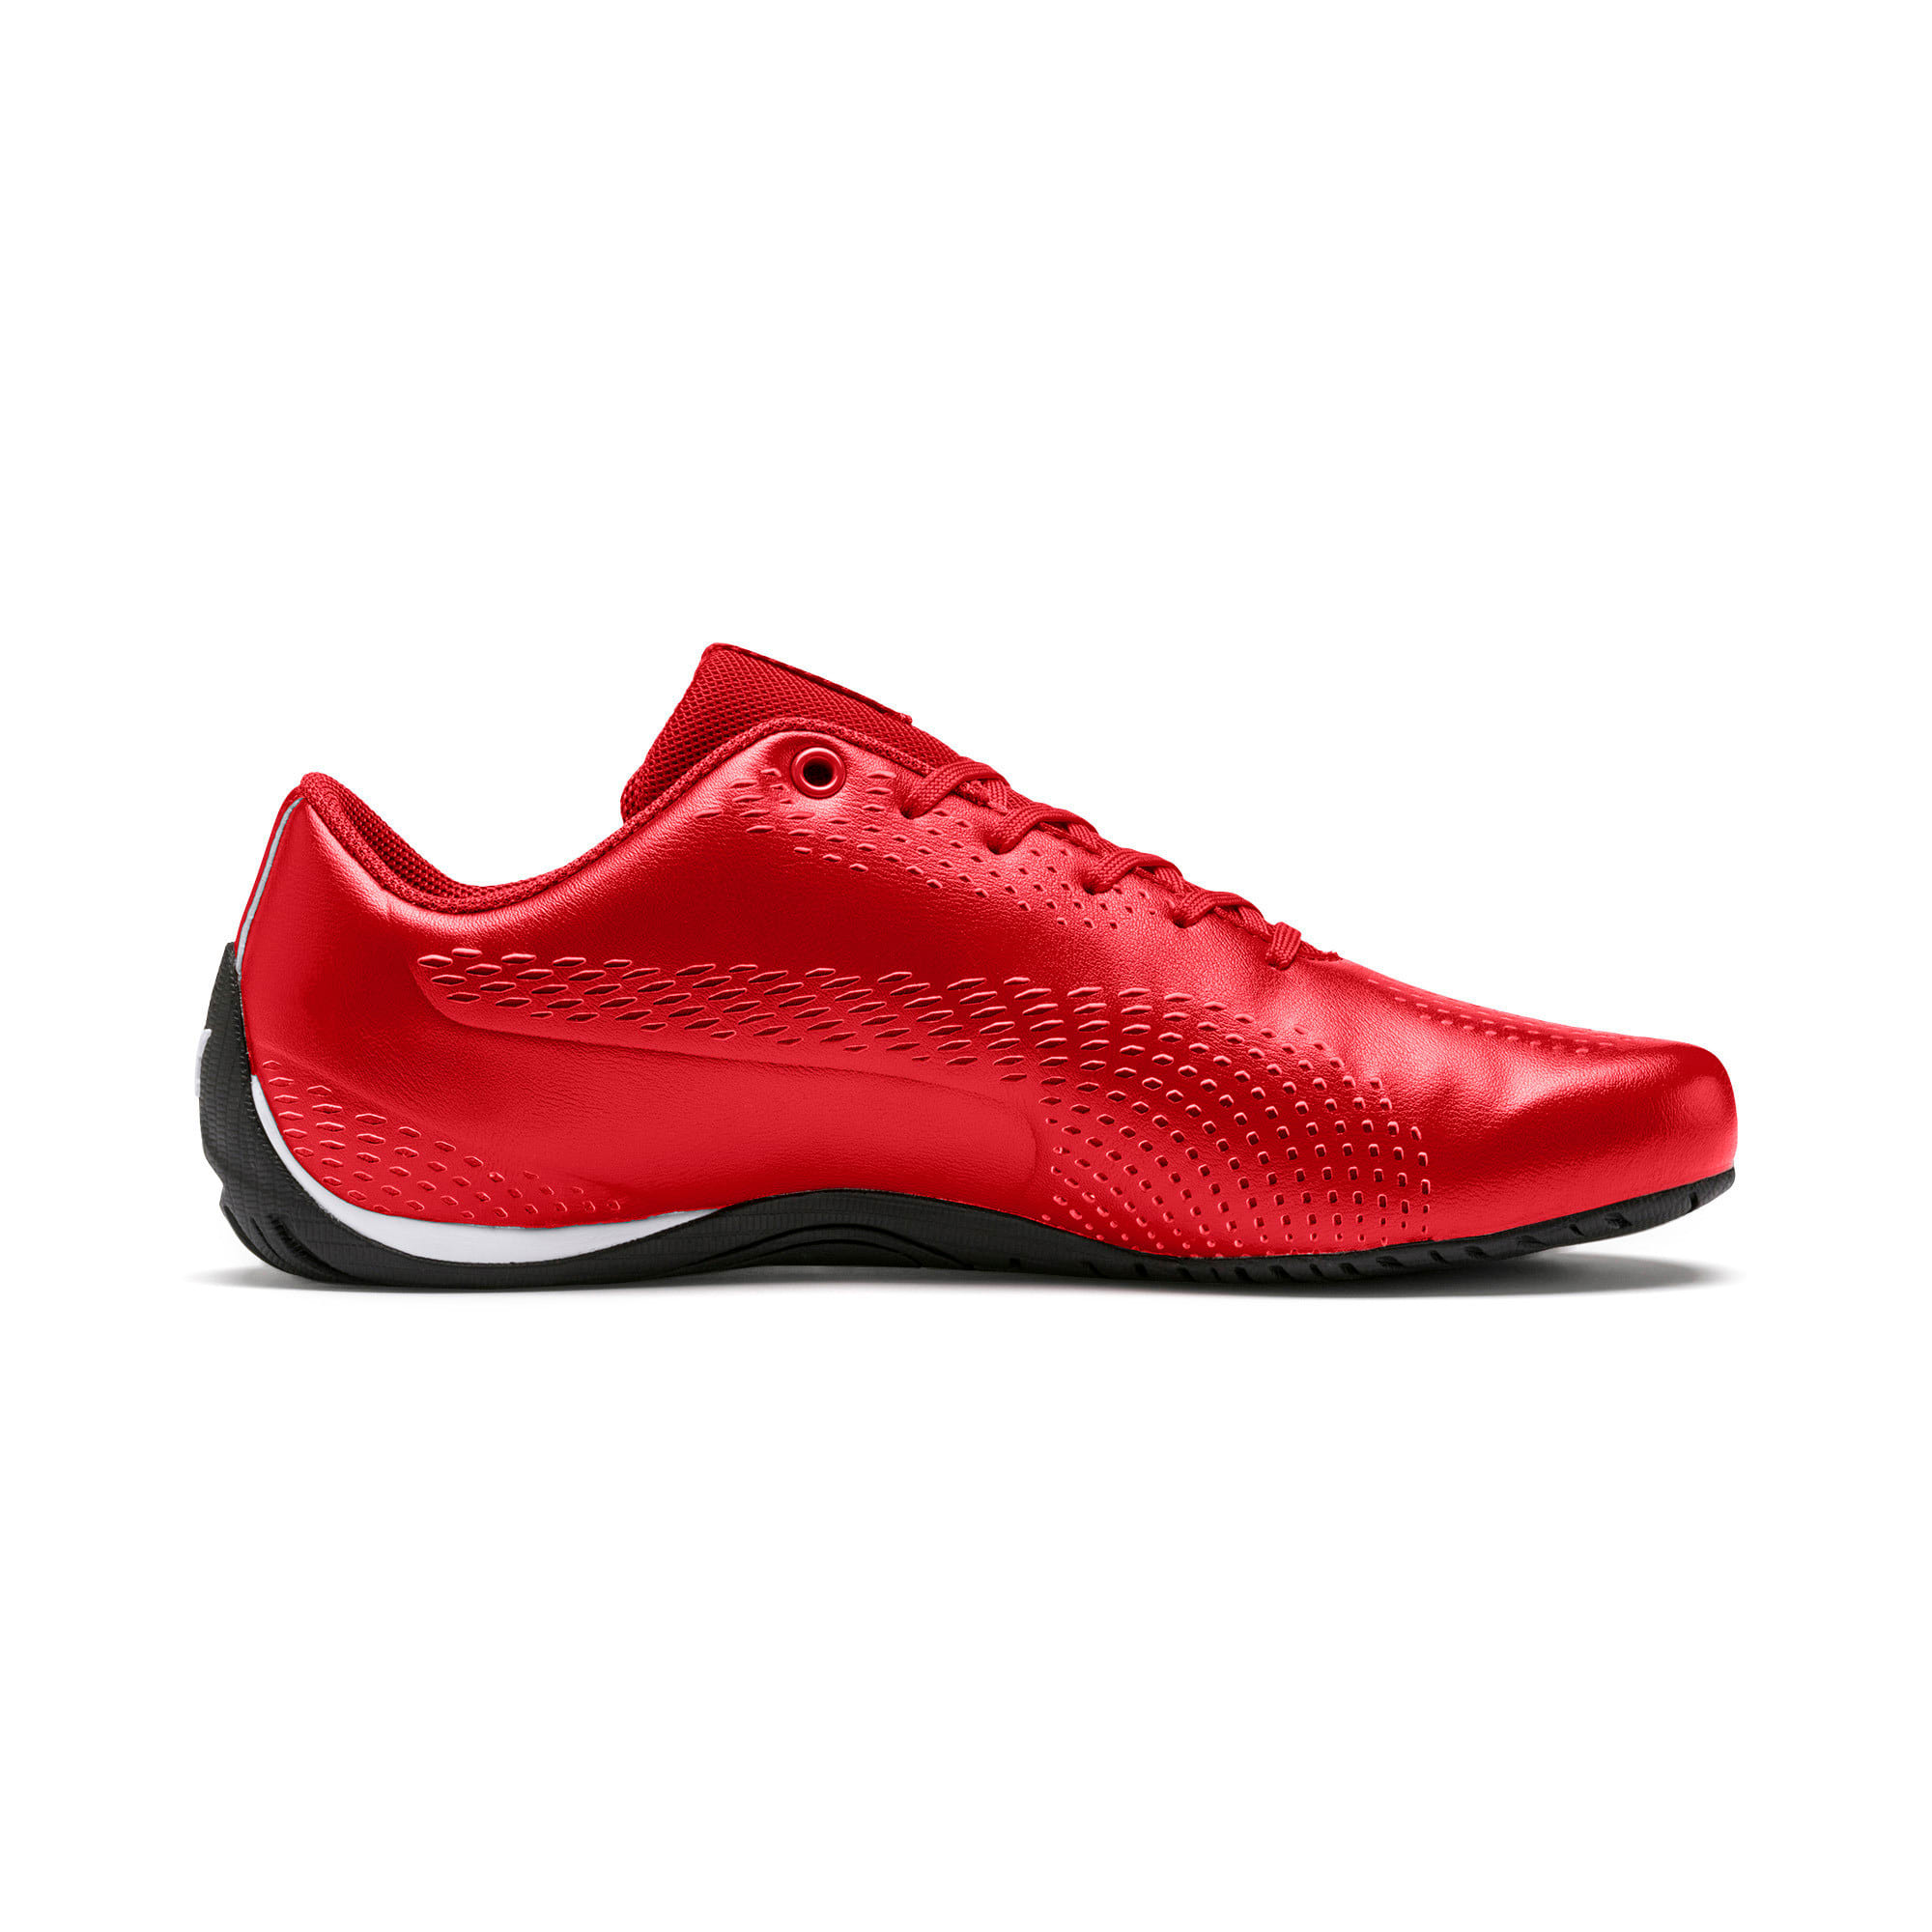 Thumbnail 6 of Ferrari Drift Cat 5 Ultra II Trainers, Rosso Corsa-Puma White, medium